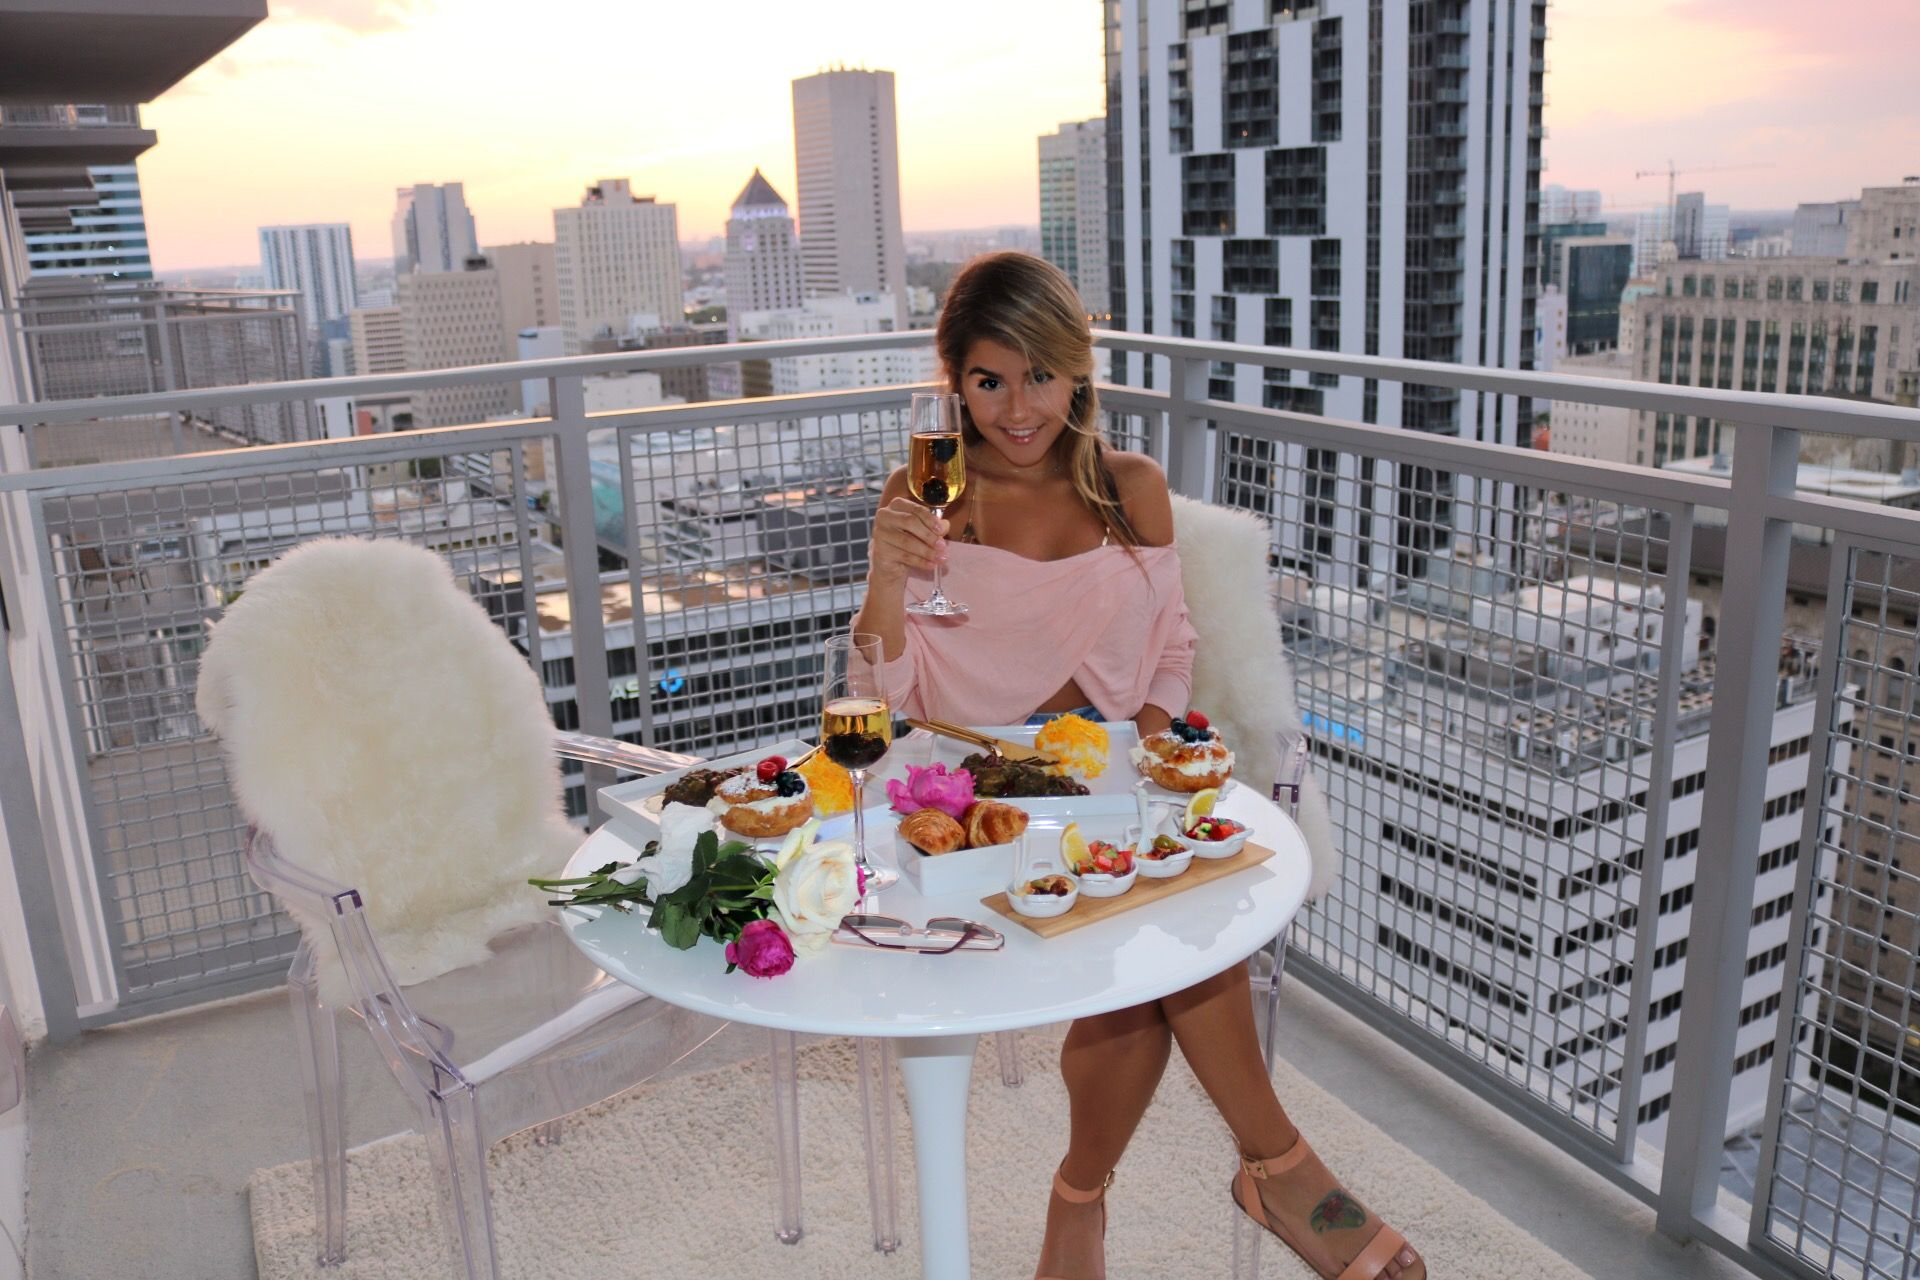 Persian Food Watching The Sunset In Brickell Downtown Miami Amazing City View Luxury Living Cheers Ghormeh Sabzi 17 Persian Food Favorite Dish Downtown Miami